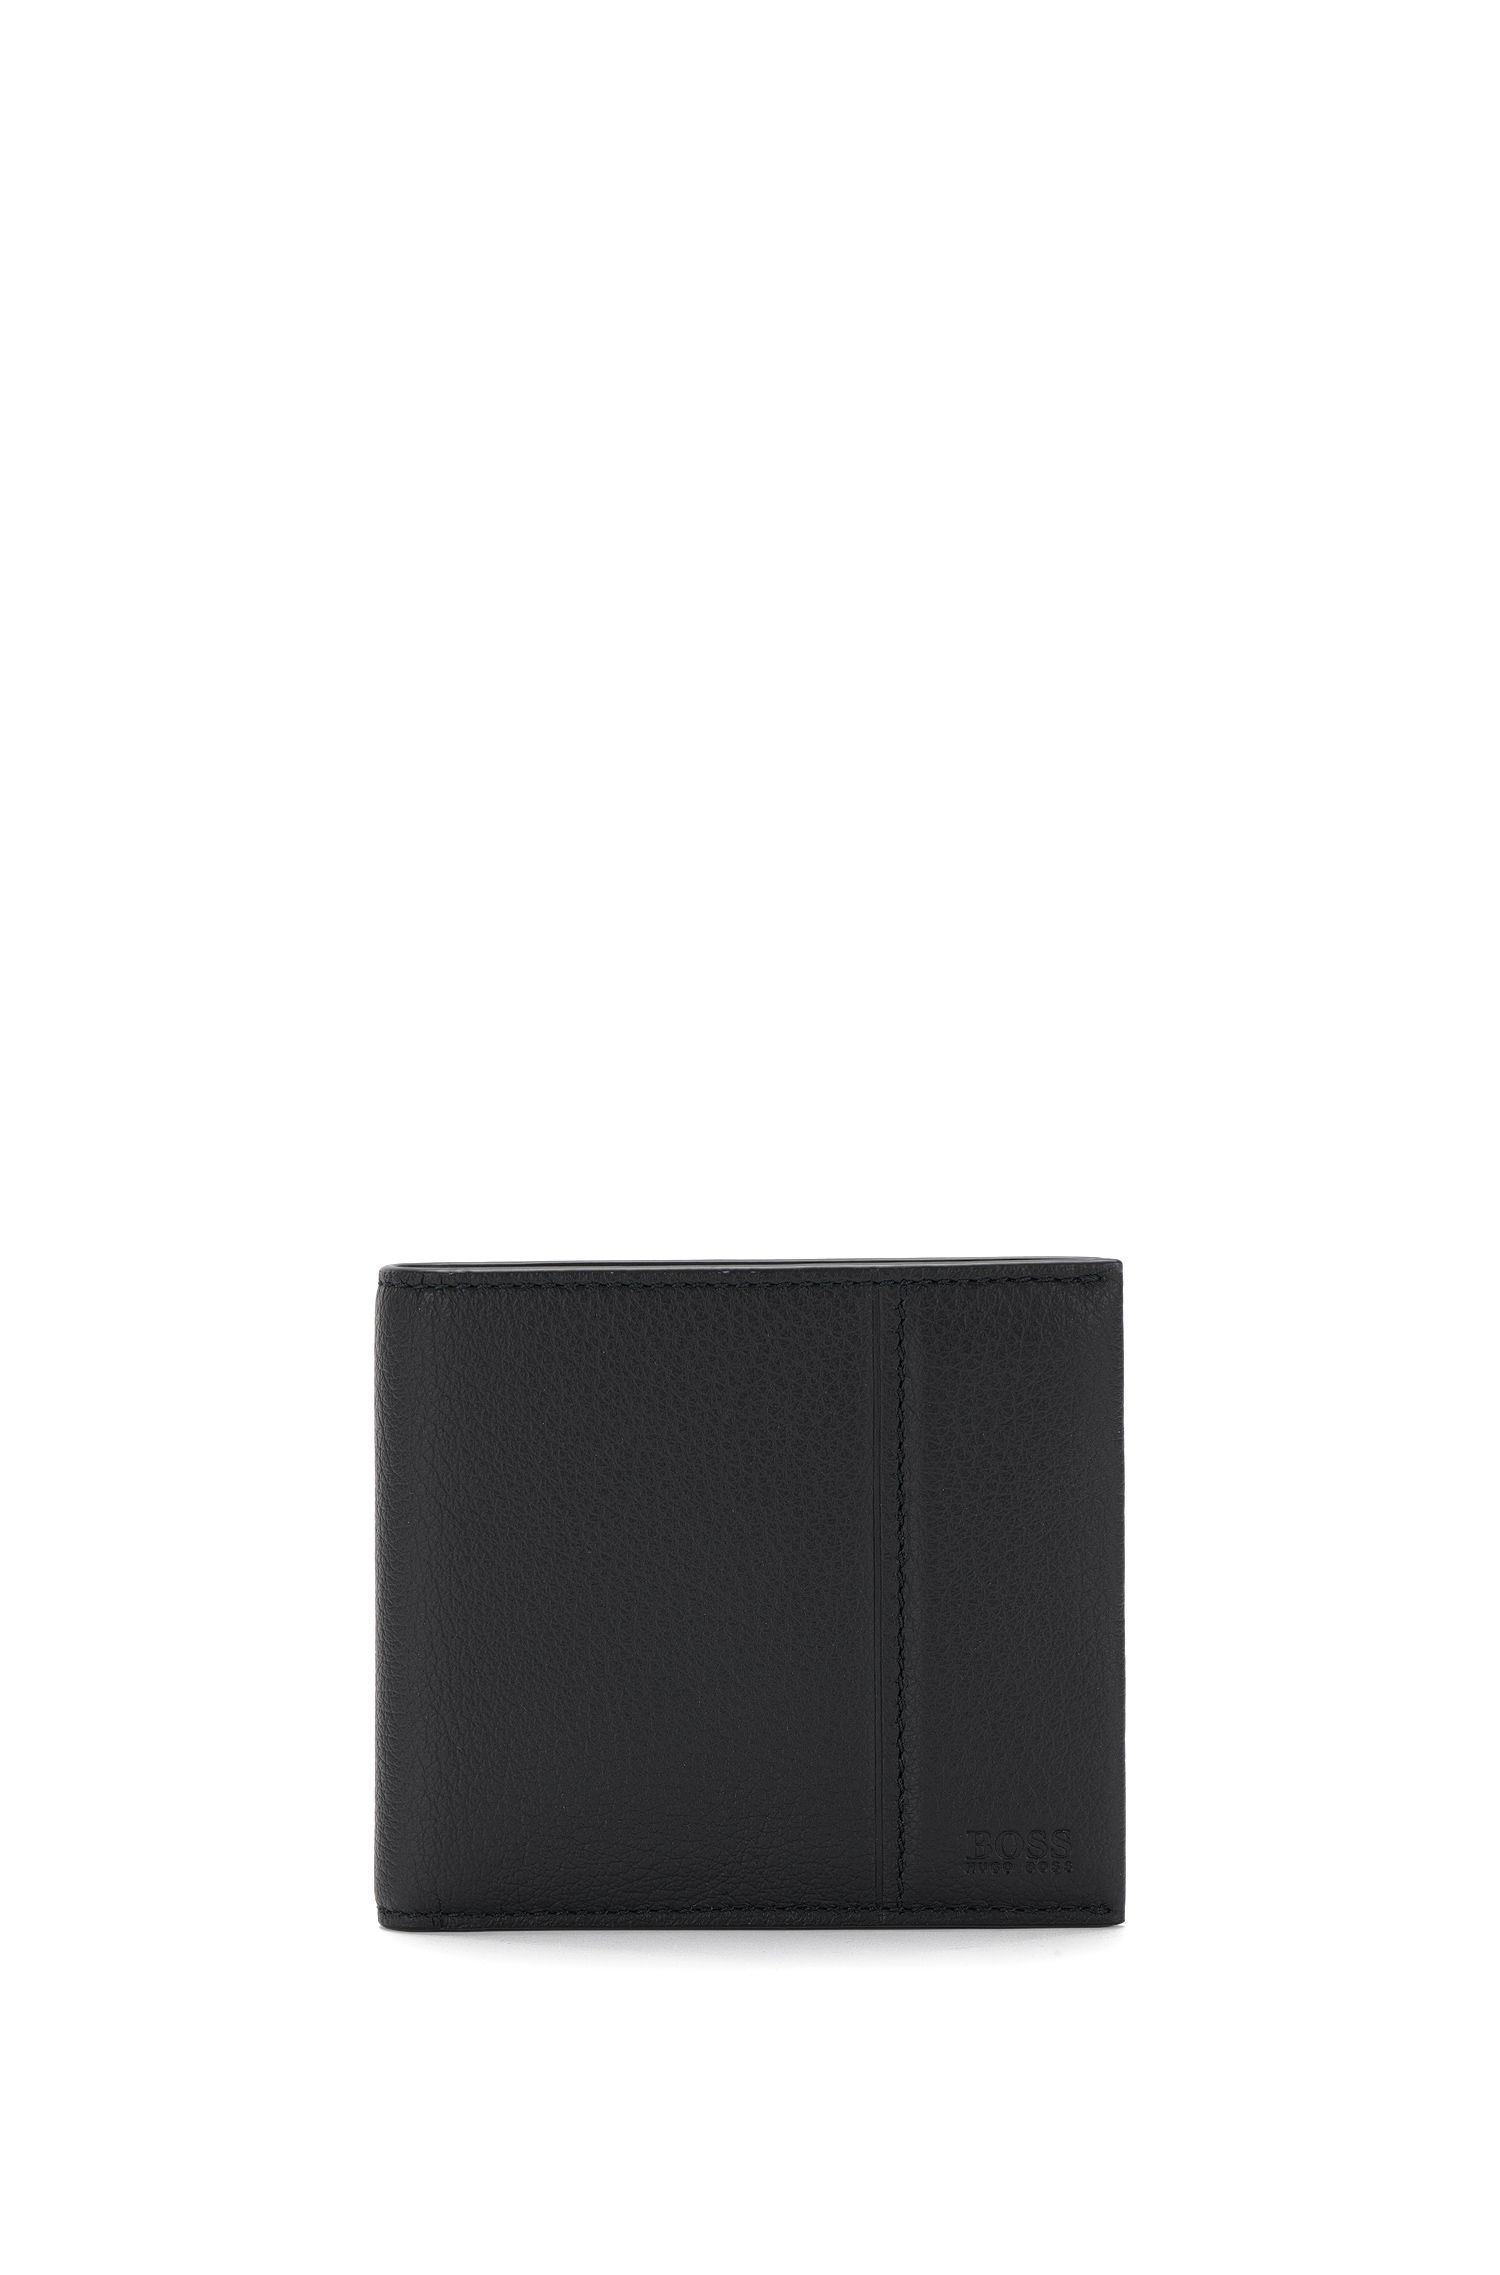 Leather bi-fold wallet with eight card slots